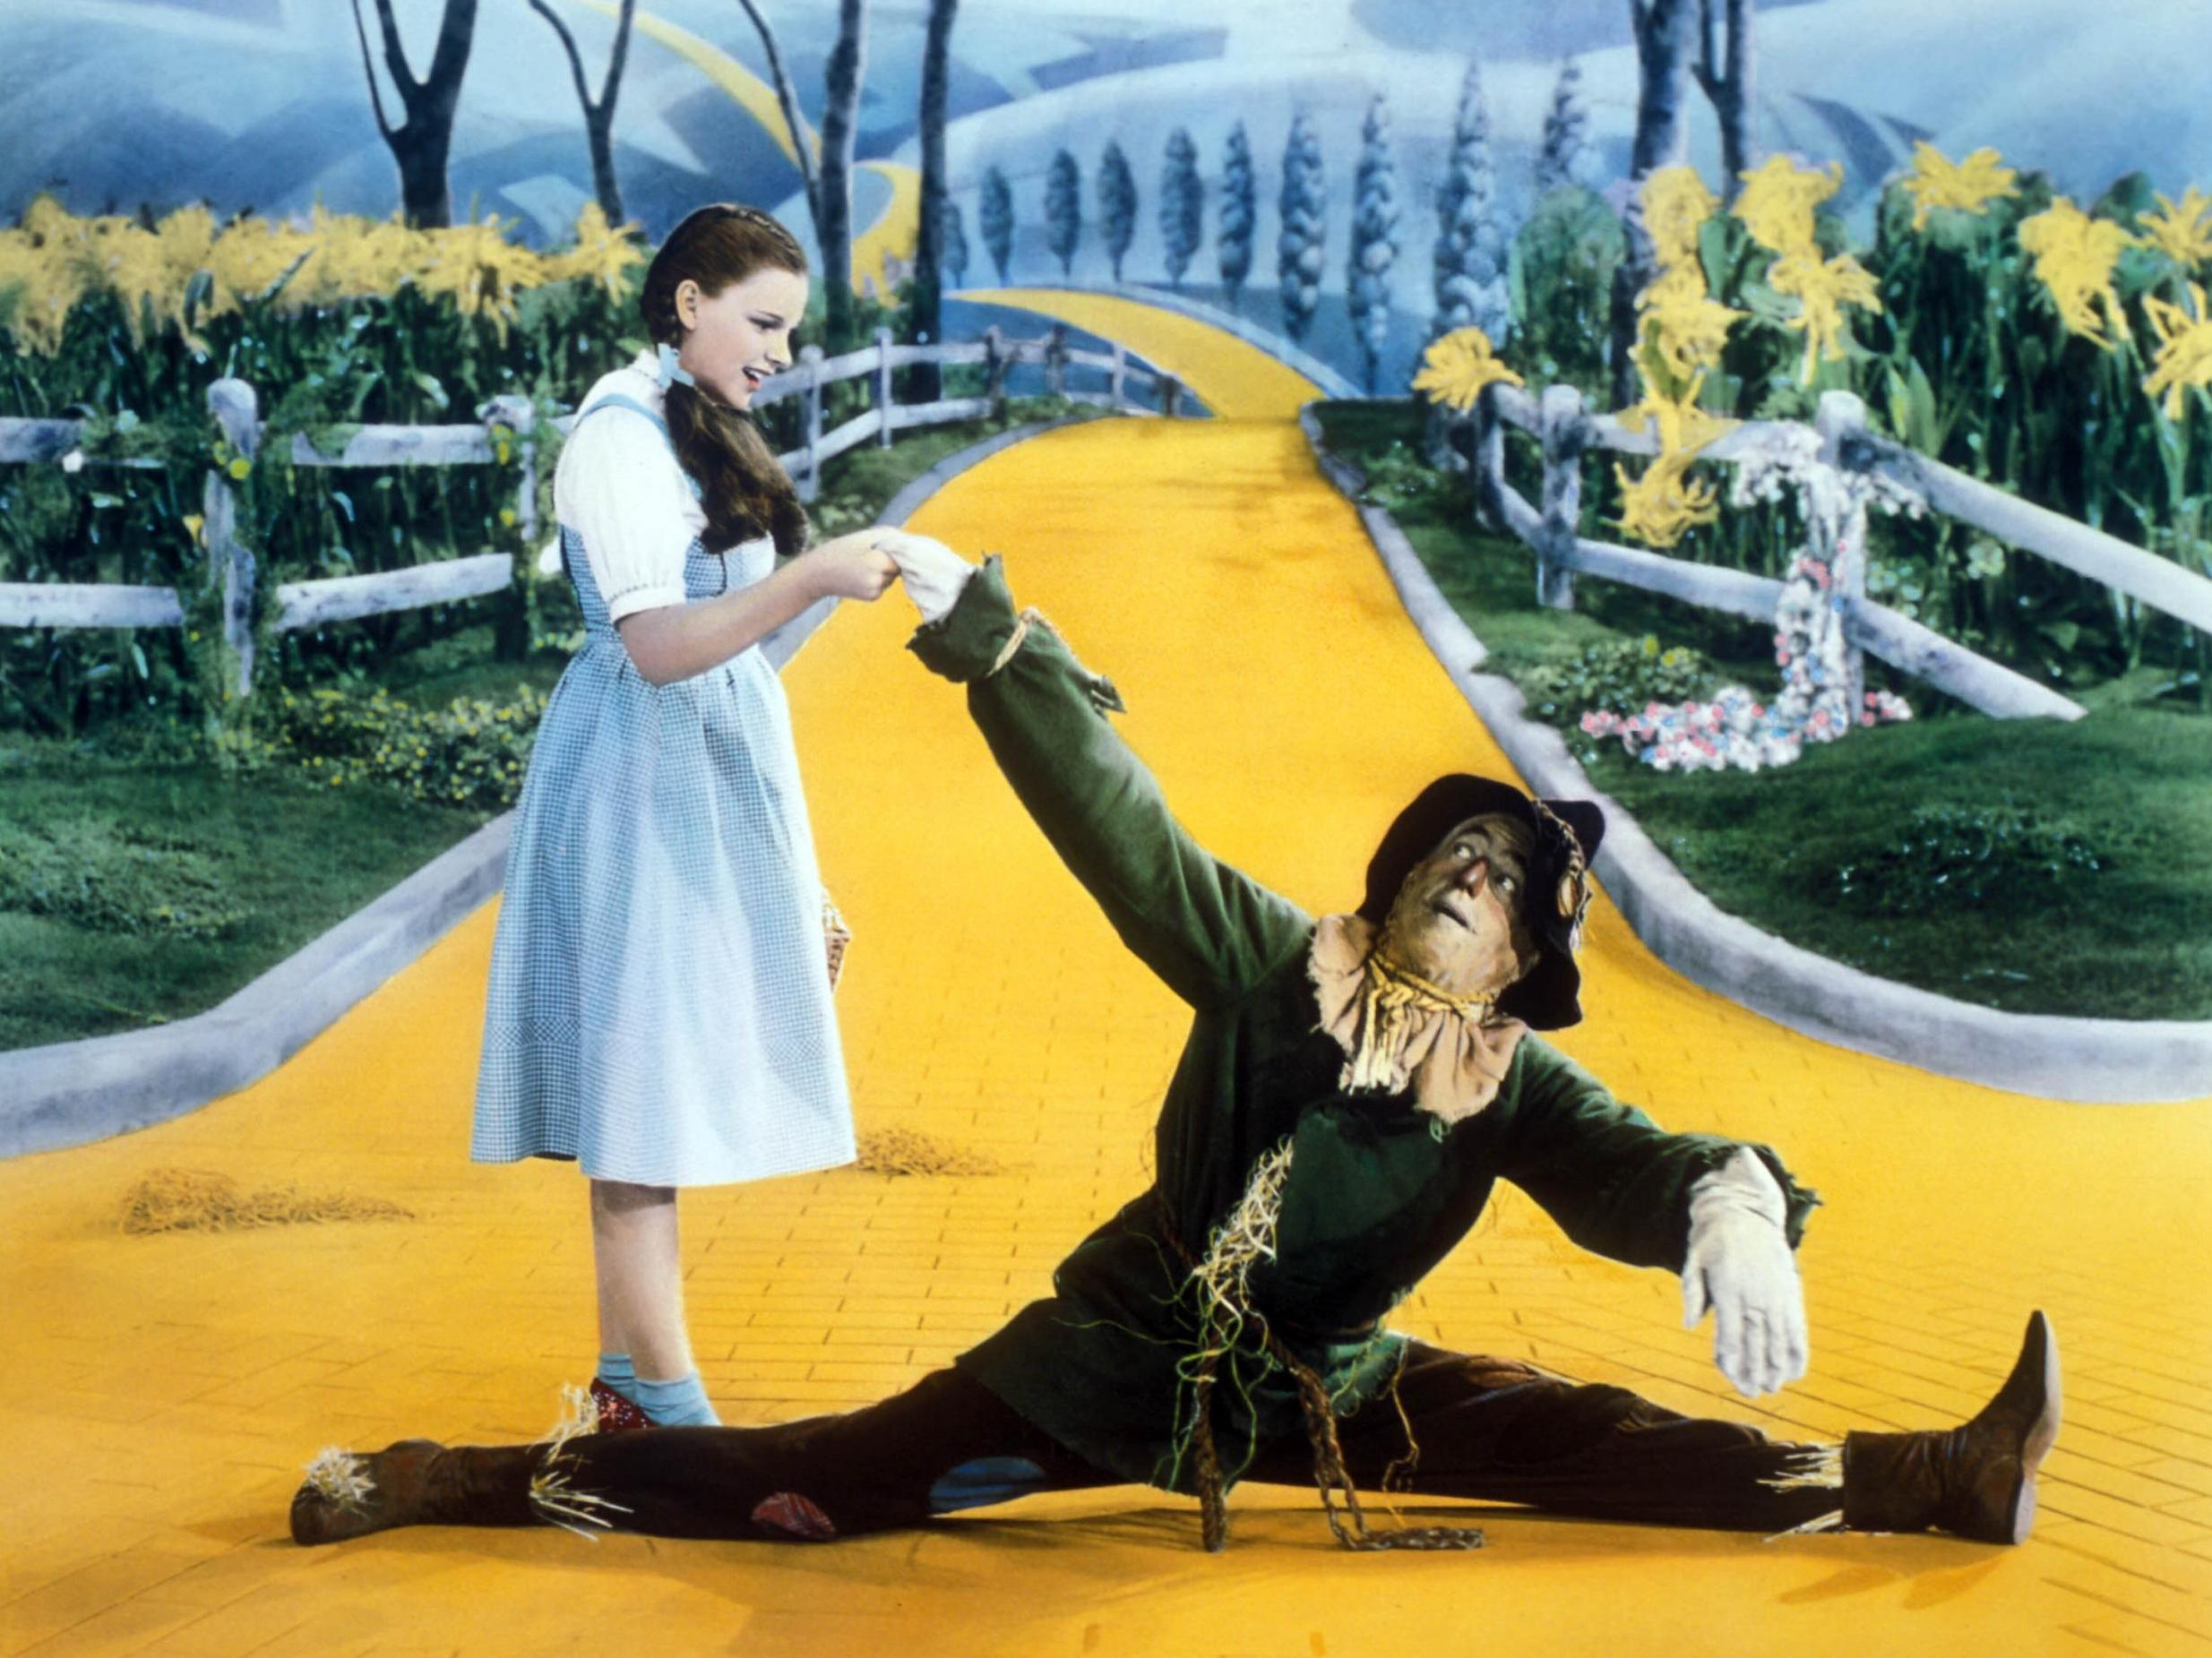 Cinemas start to reopen in Japan, showing Hollywood classics like The Wizard of Oz and Ben Hur